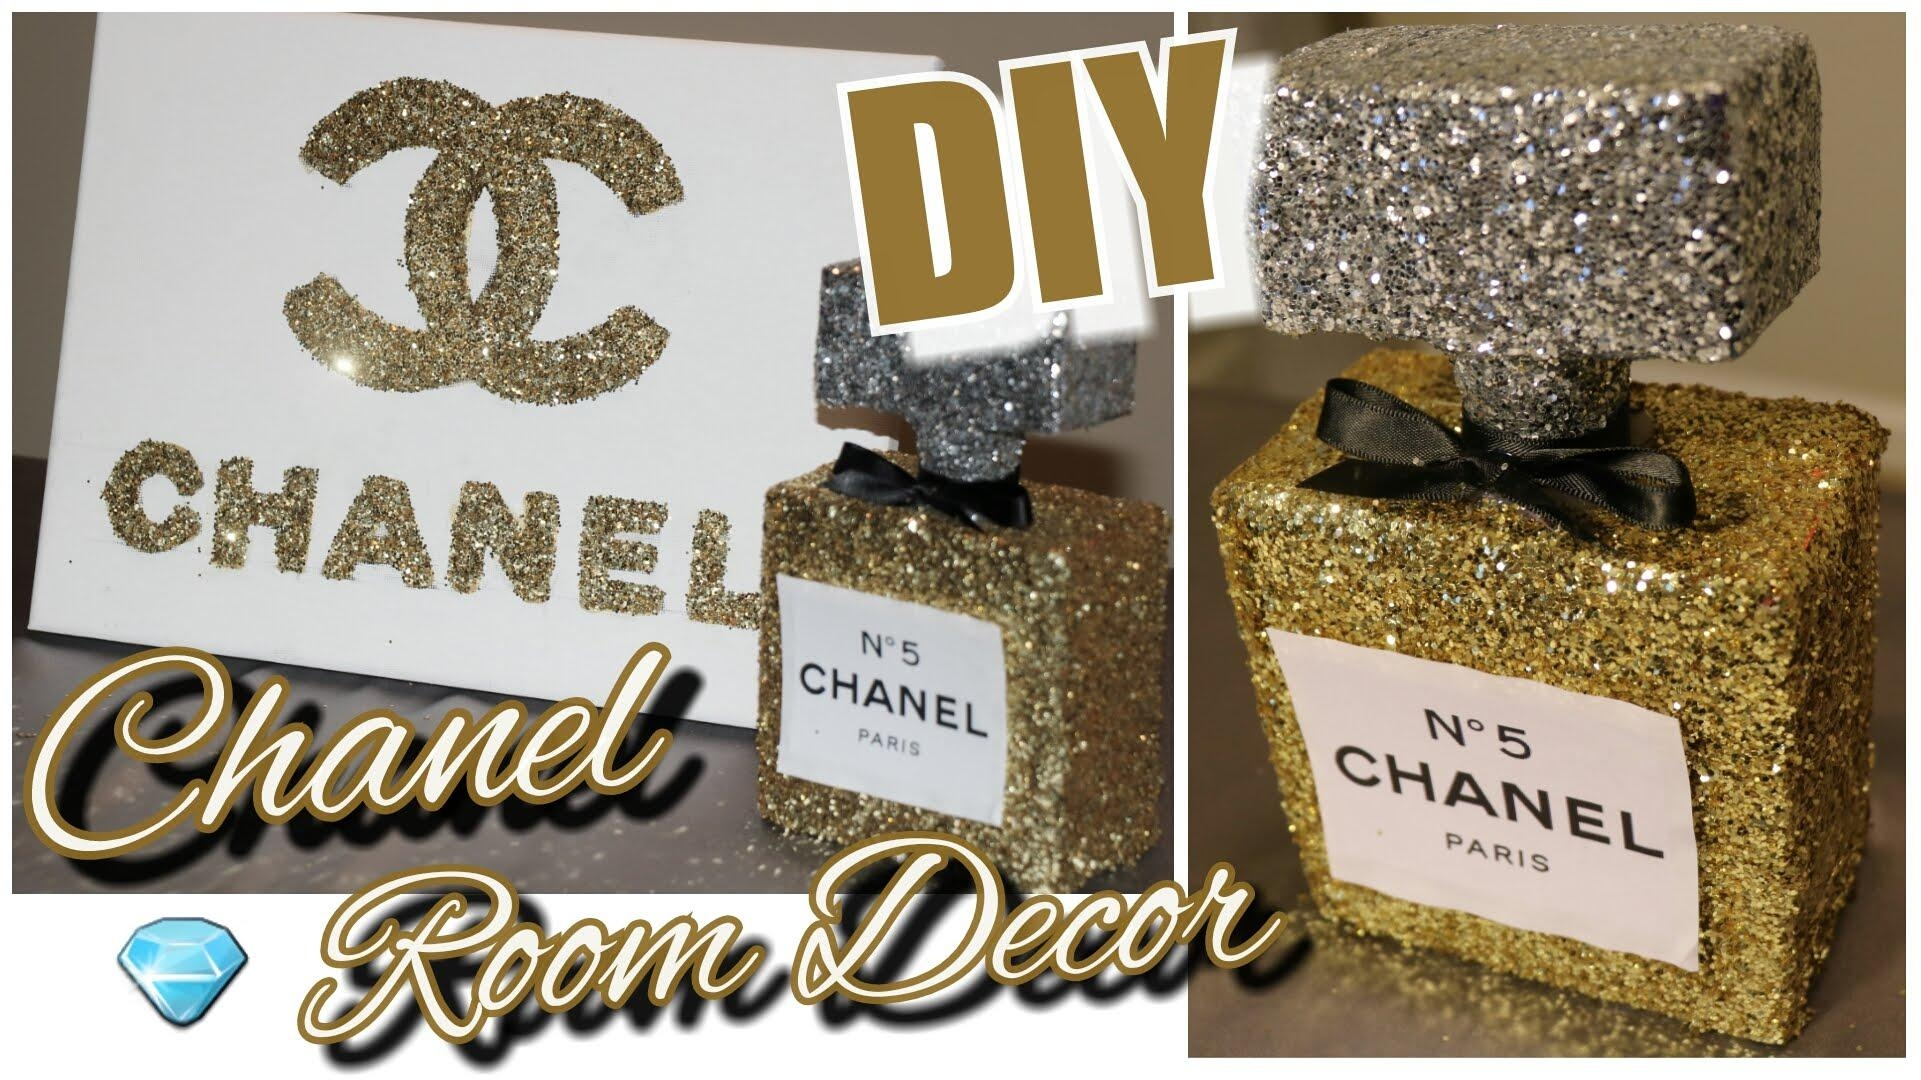 Diy Chanel Perfume Bottle Room Decor & Chanel Canvas Wall Decor Inside Chanel Wall Decor (Image 10 of 20)